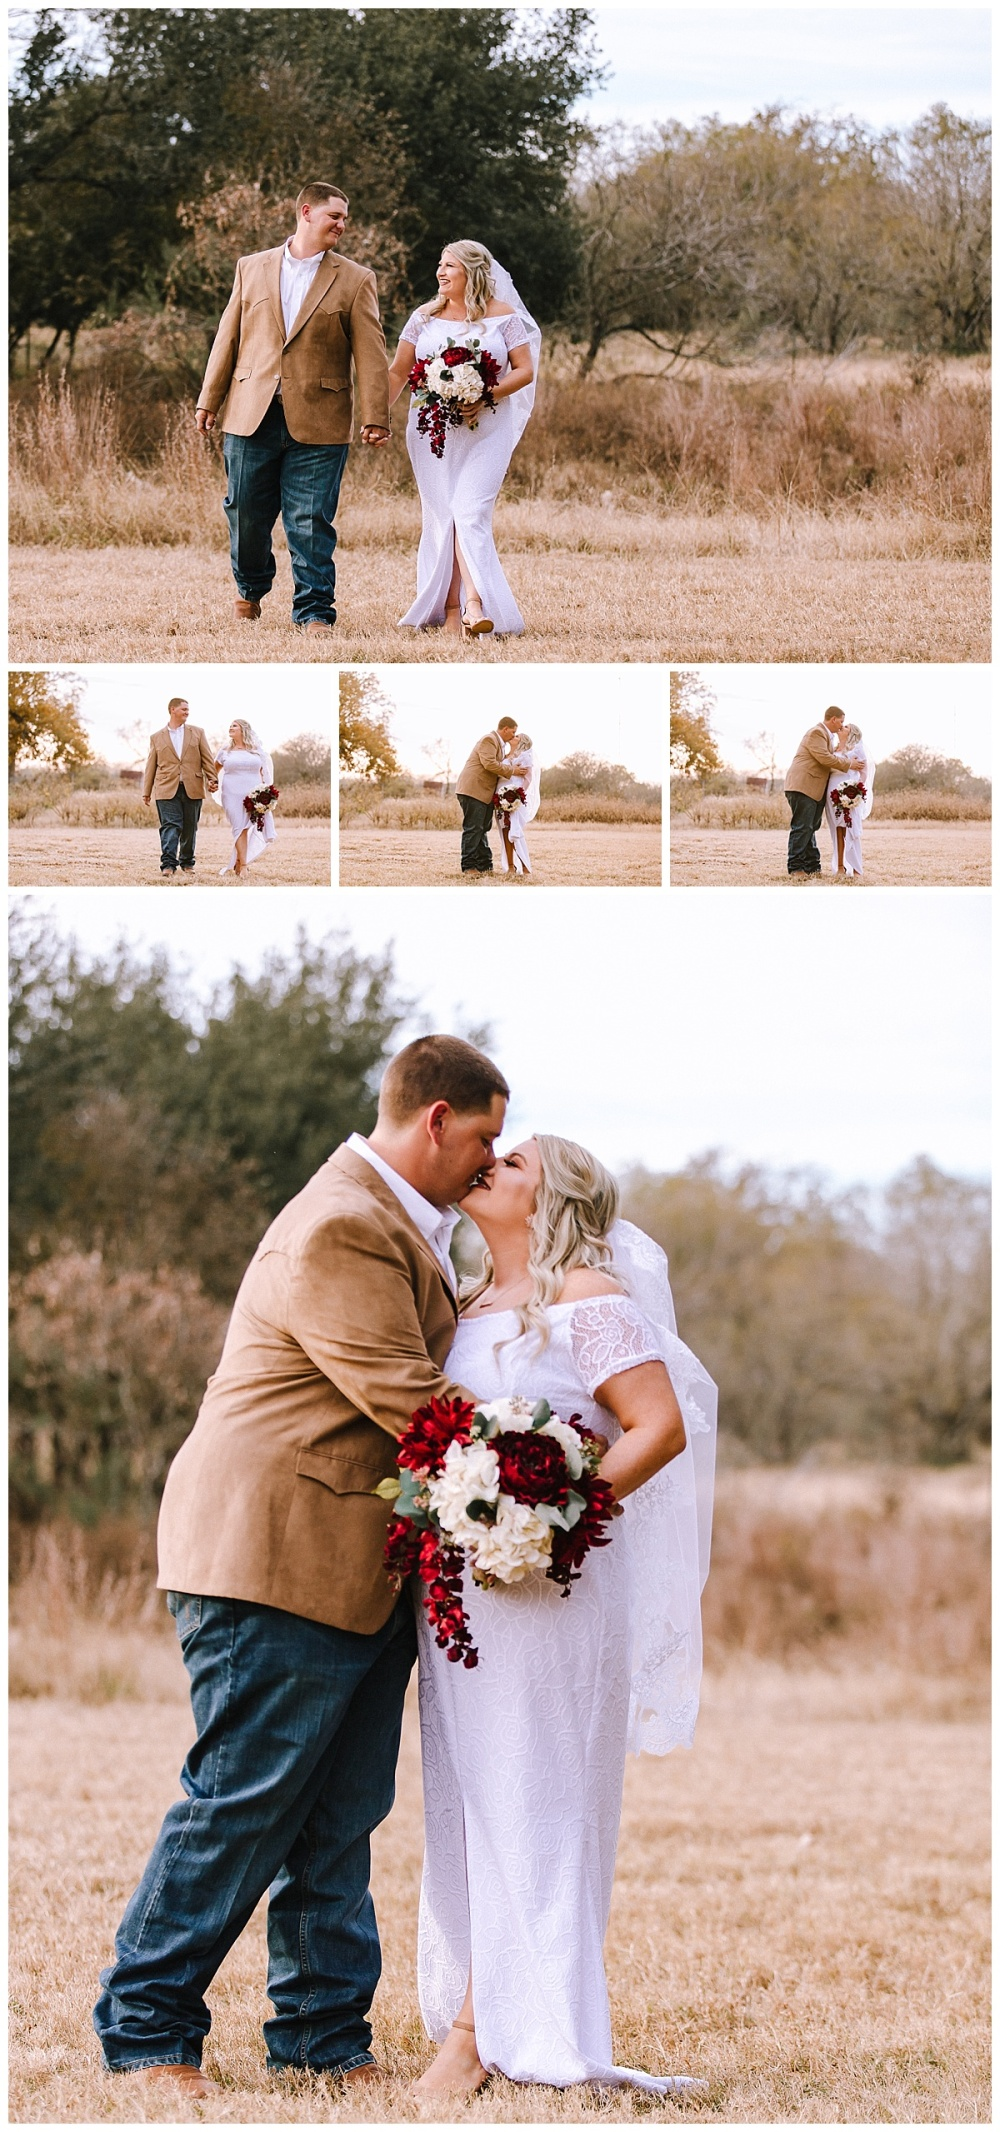 Wedding-Photographer-LaVernia-Texas-Ceremony-Under-the-Trees-Bride-Groom-Fall-McDonald-Carly-Barton-Photography_0020.jpg